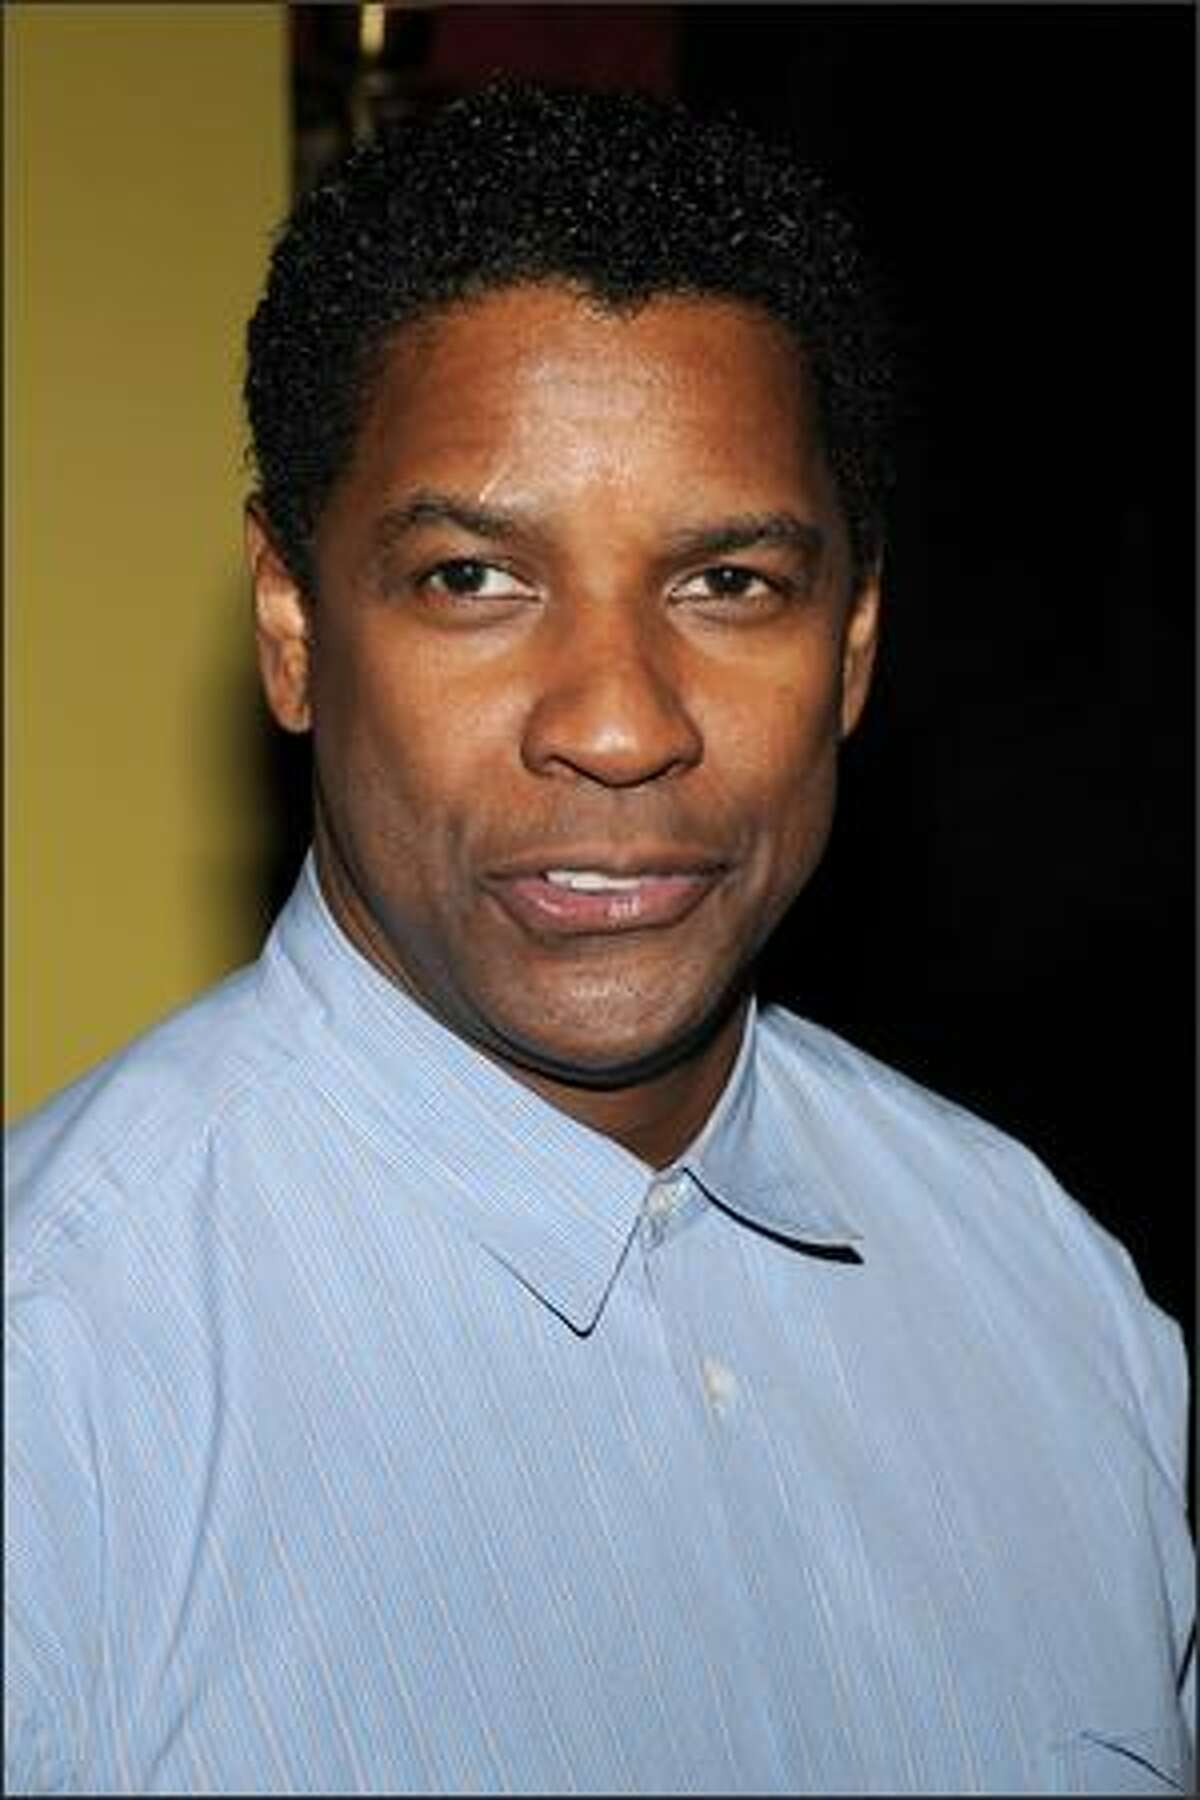 Actor/director Denzel Washington arrives at the premiere of his film